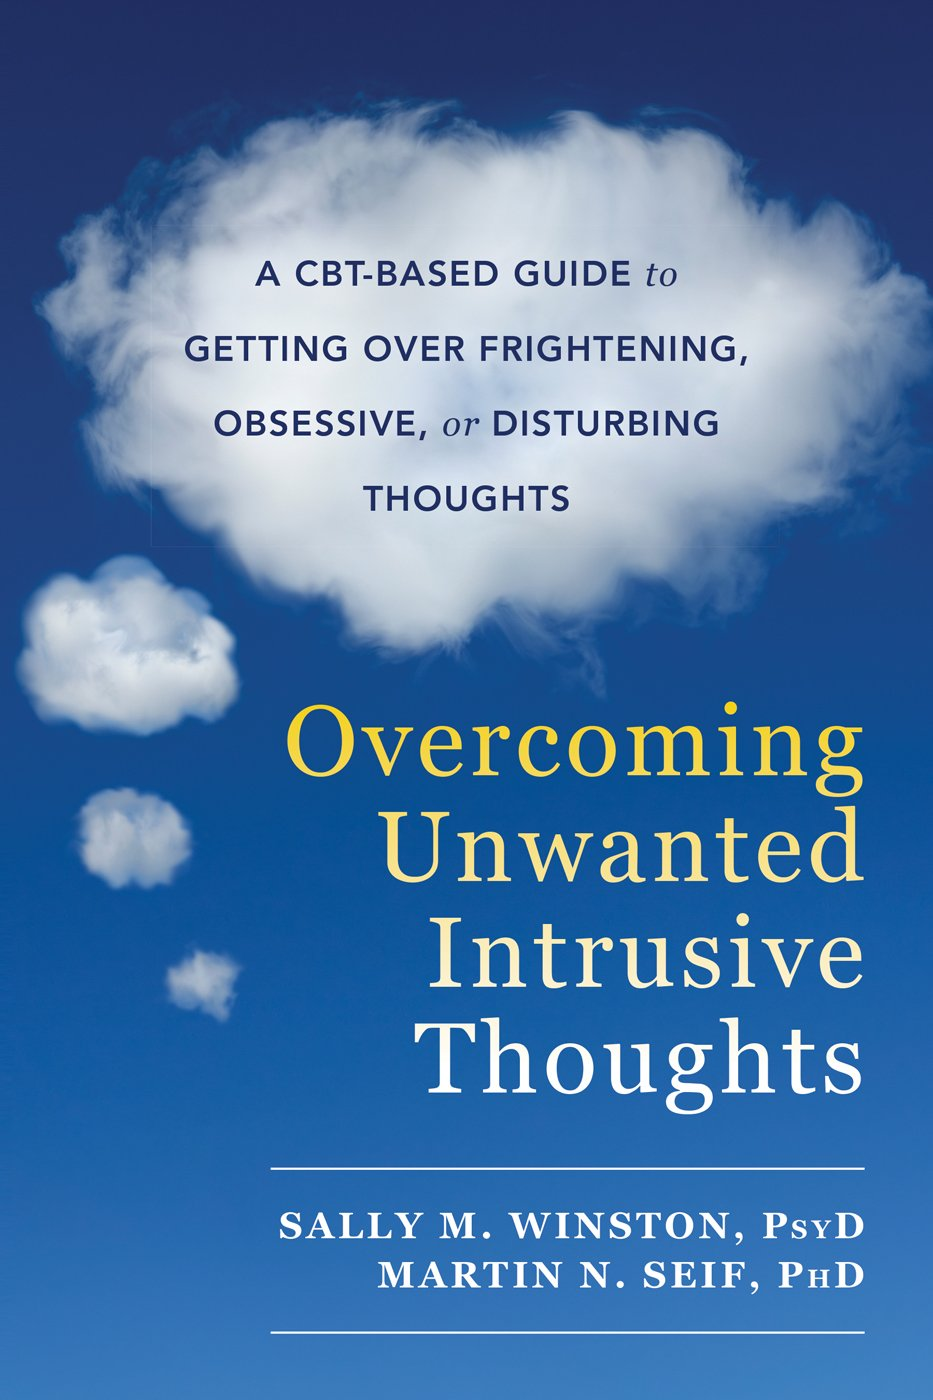 Overcoming Unwanted Intrusive Thoughts